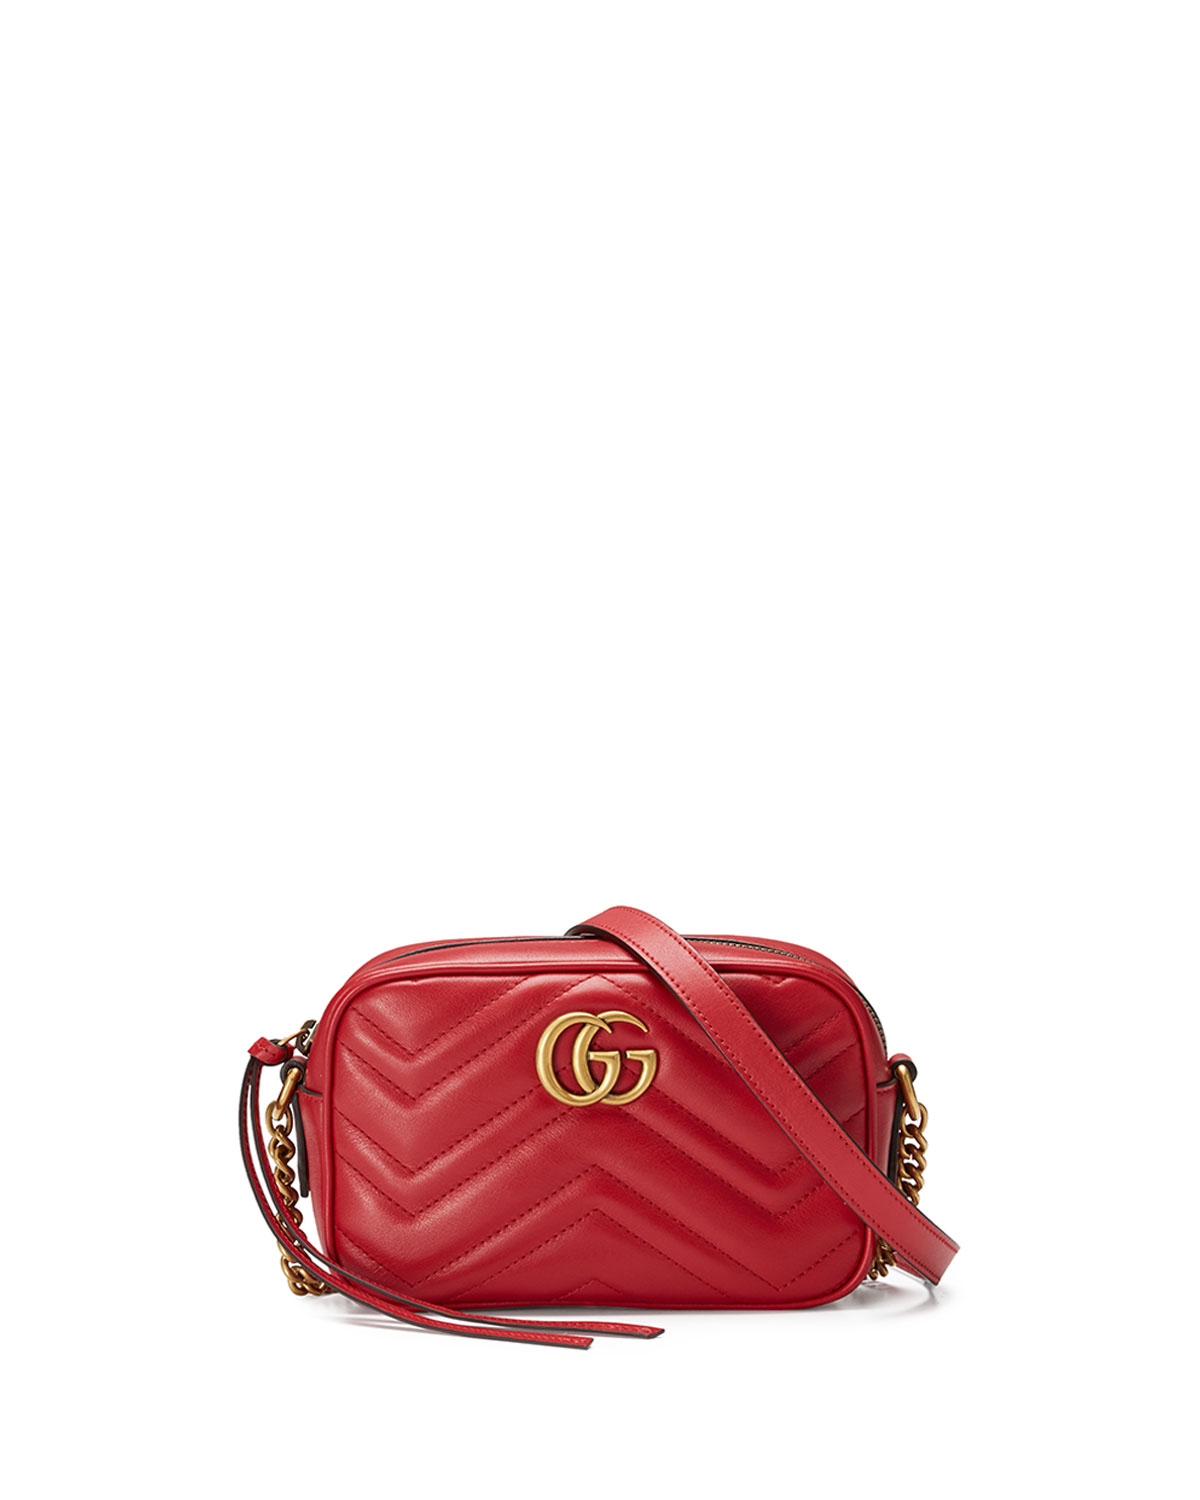 3233466a41fc Gucci Gg Marmont Mini Matelassé Camera Bag Hibiscus Red | Stanford ...